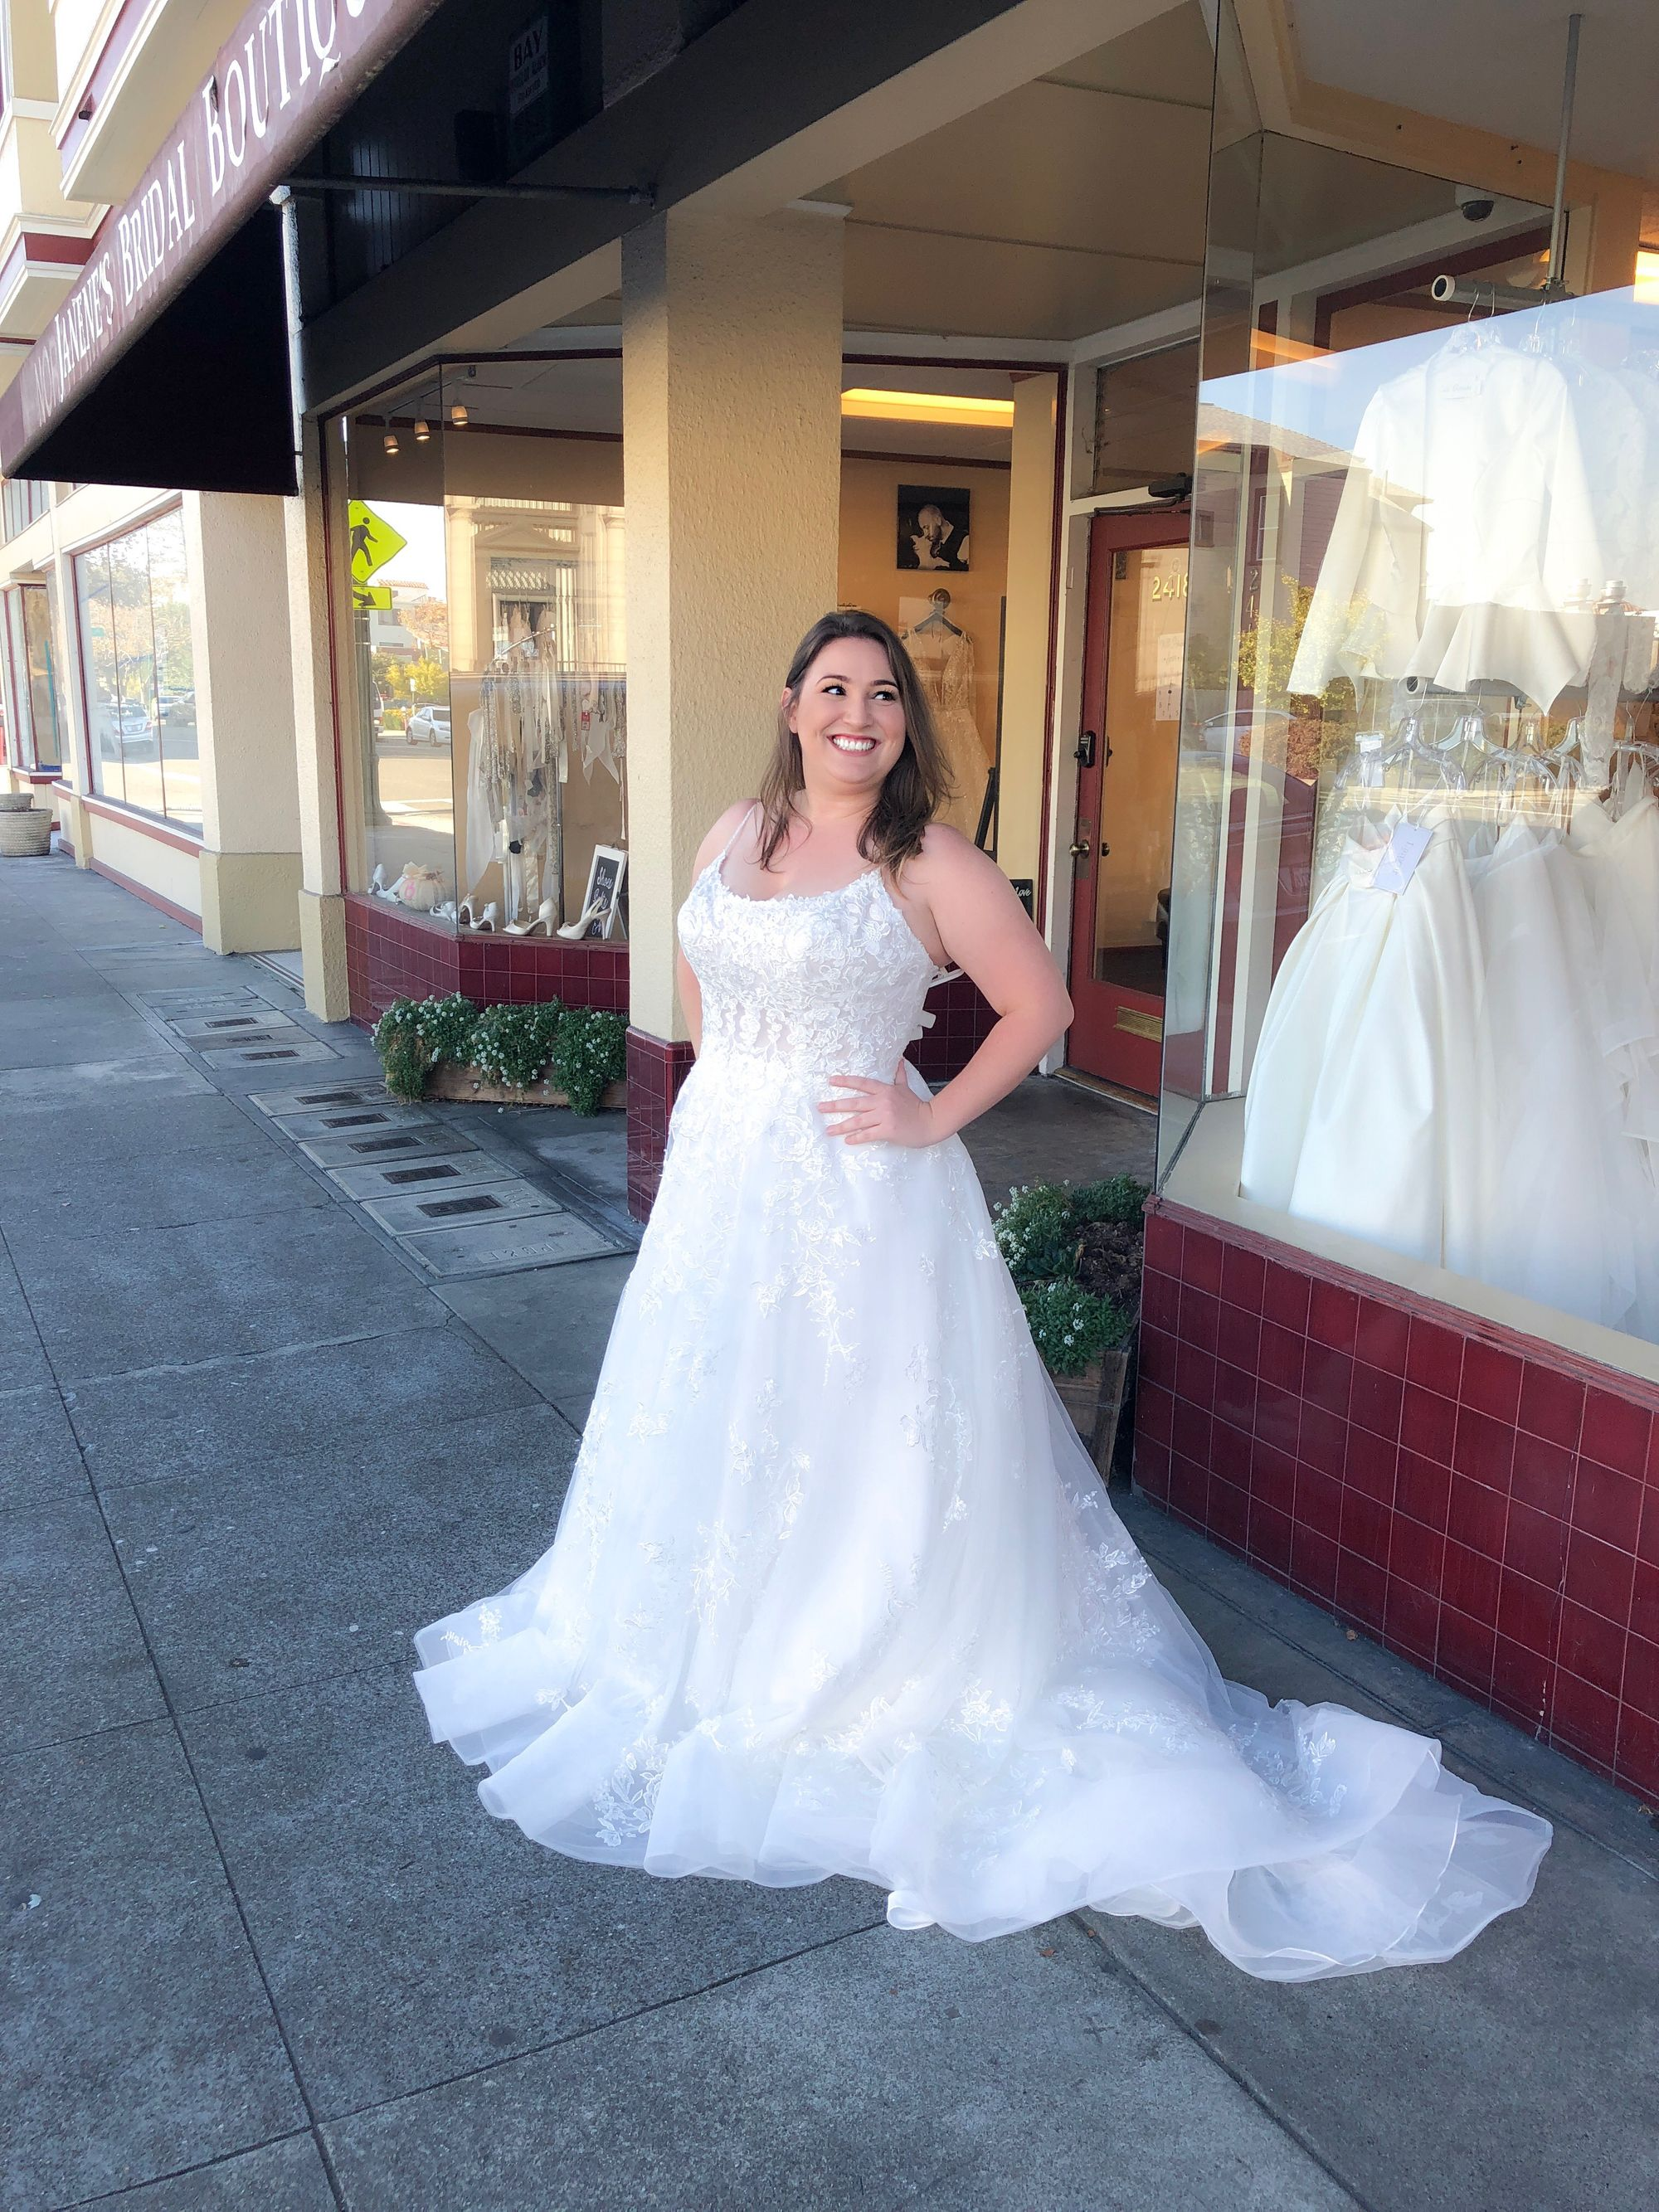 Super Gorgeous New Arrival In Our Plus Size Section D2843 By Essense Of Australia Avail Designer Wedding Dresses Bridal Boutique Wedding Dress Shopping